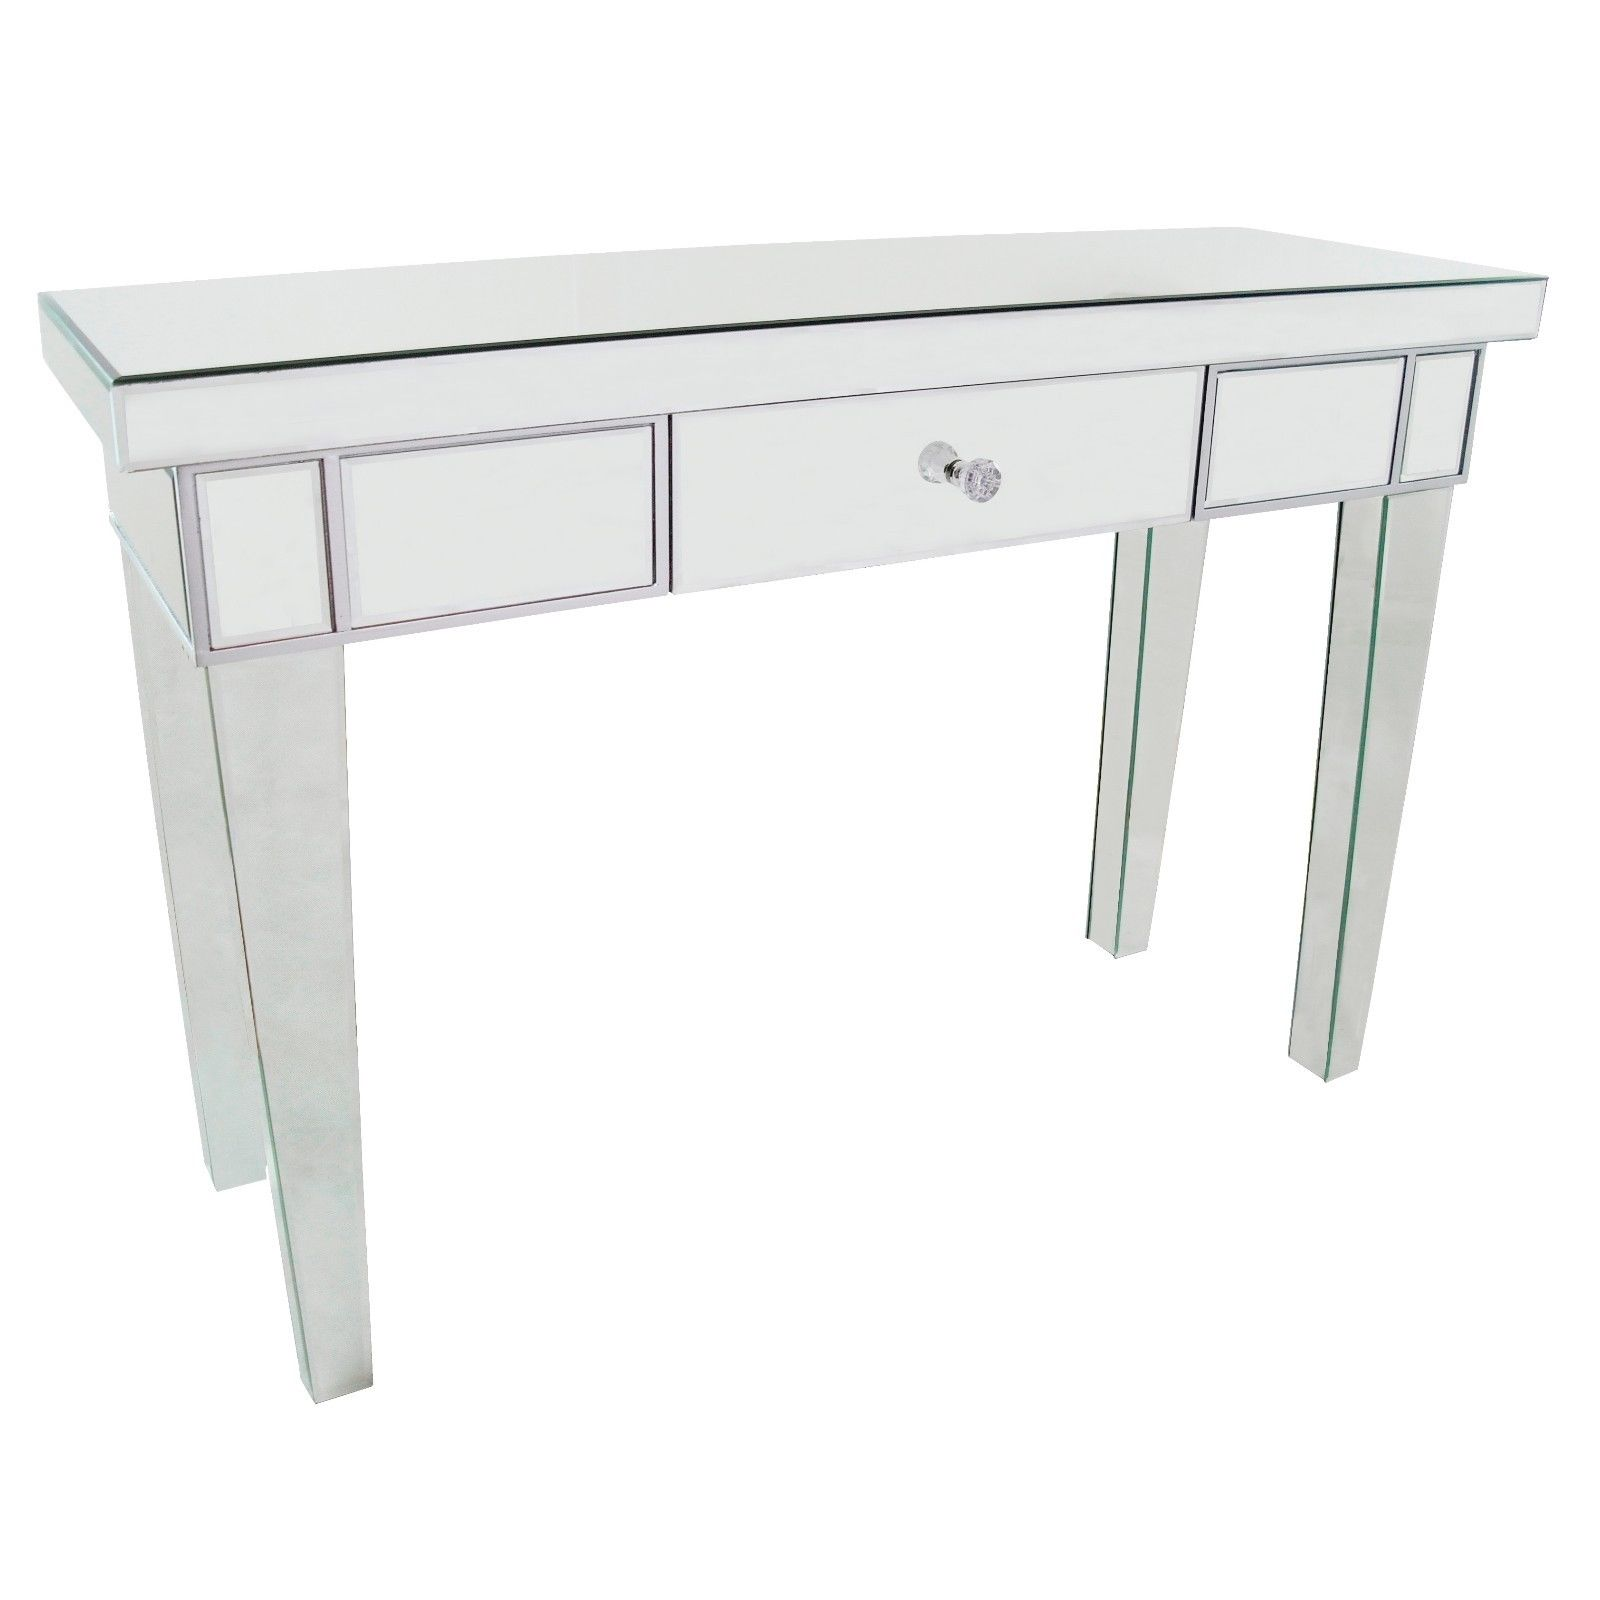 Silver Venetian Mirror Console with Drawer